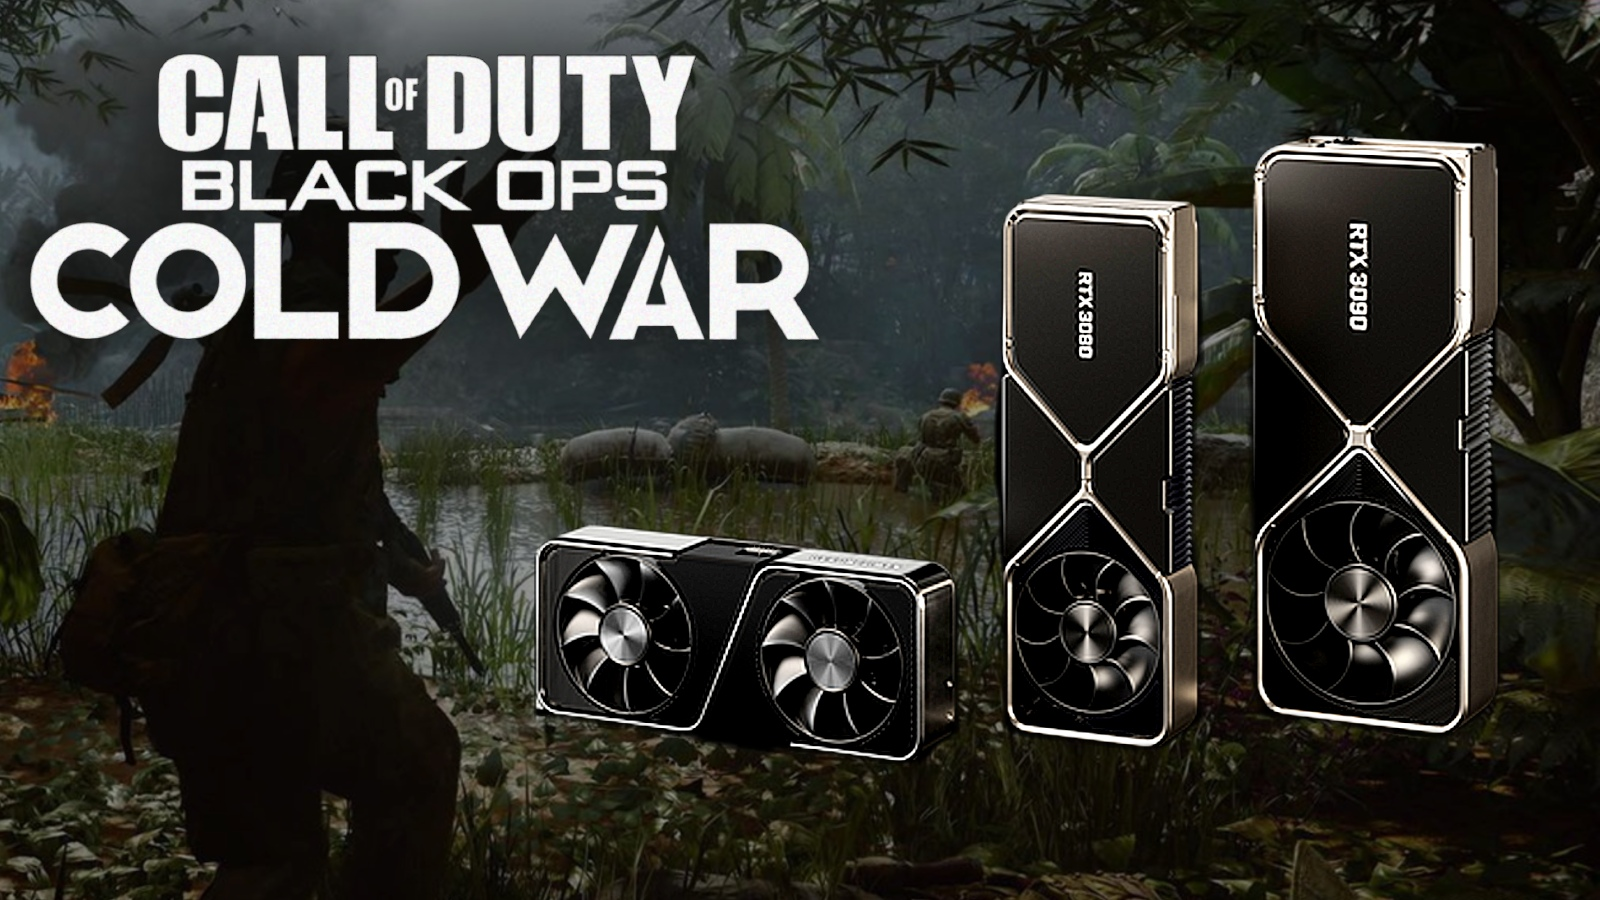 black ops cold war nvidia - Download How to get Black Ops Cold War for free with NVIDIA 3080 and 3090 for FREE - Free Game Hacks